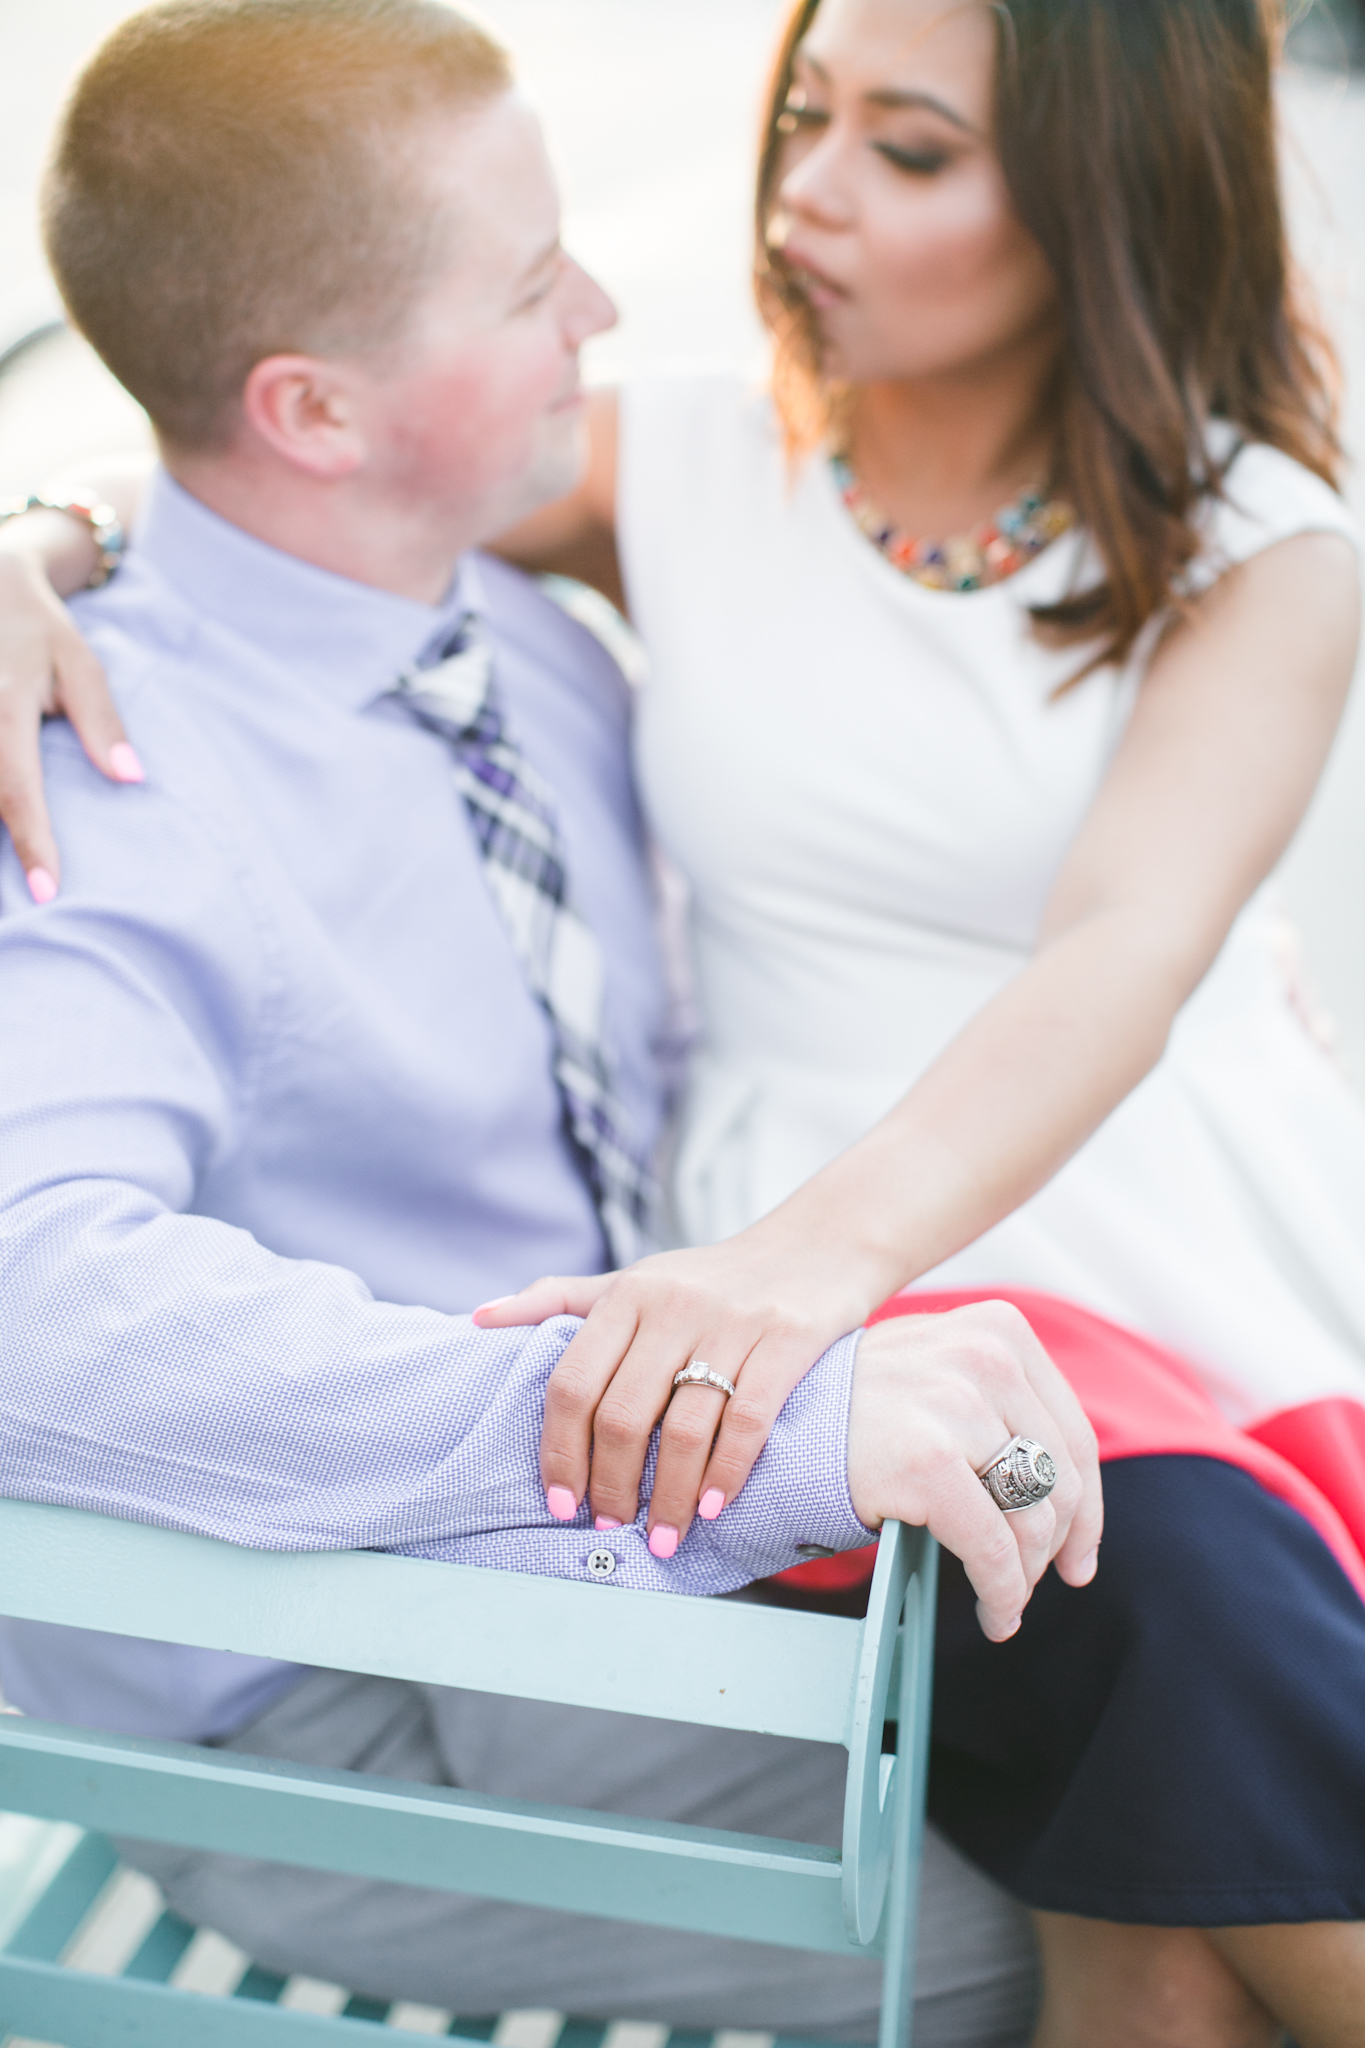 One of the best feelings is when old friends find you to take their engagement photos.